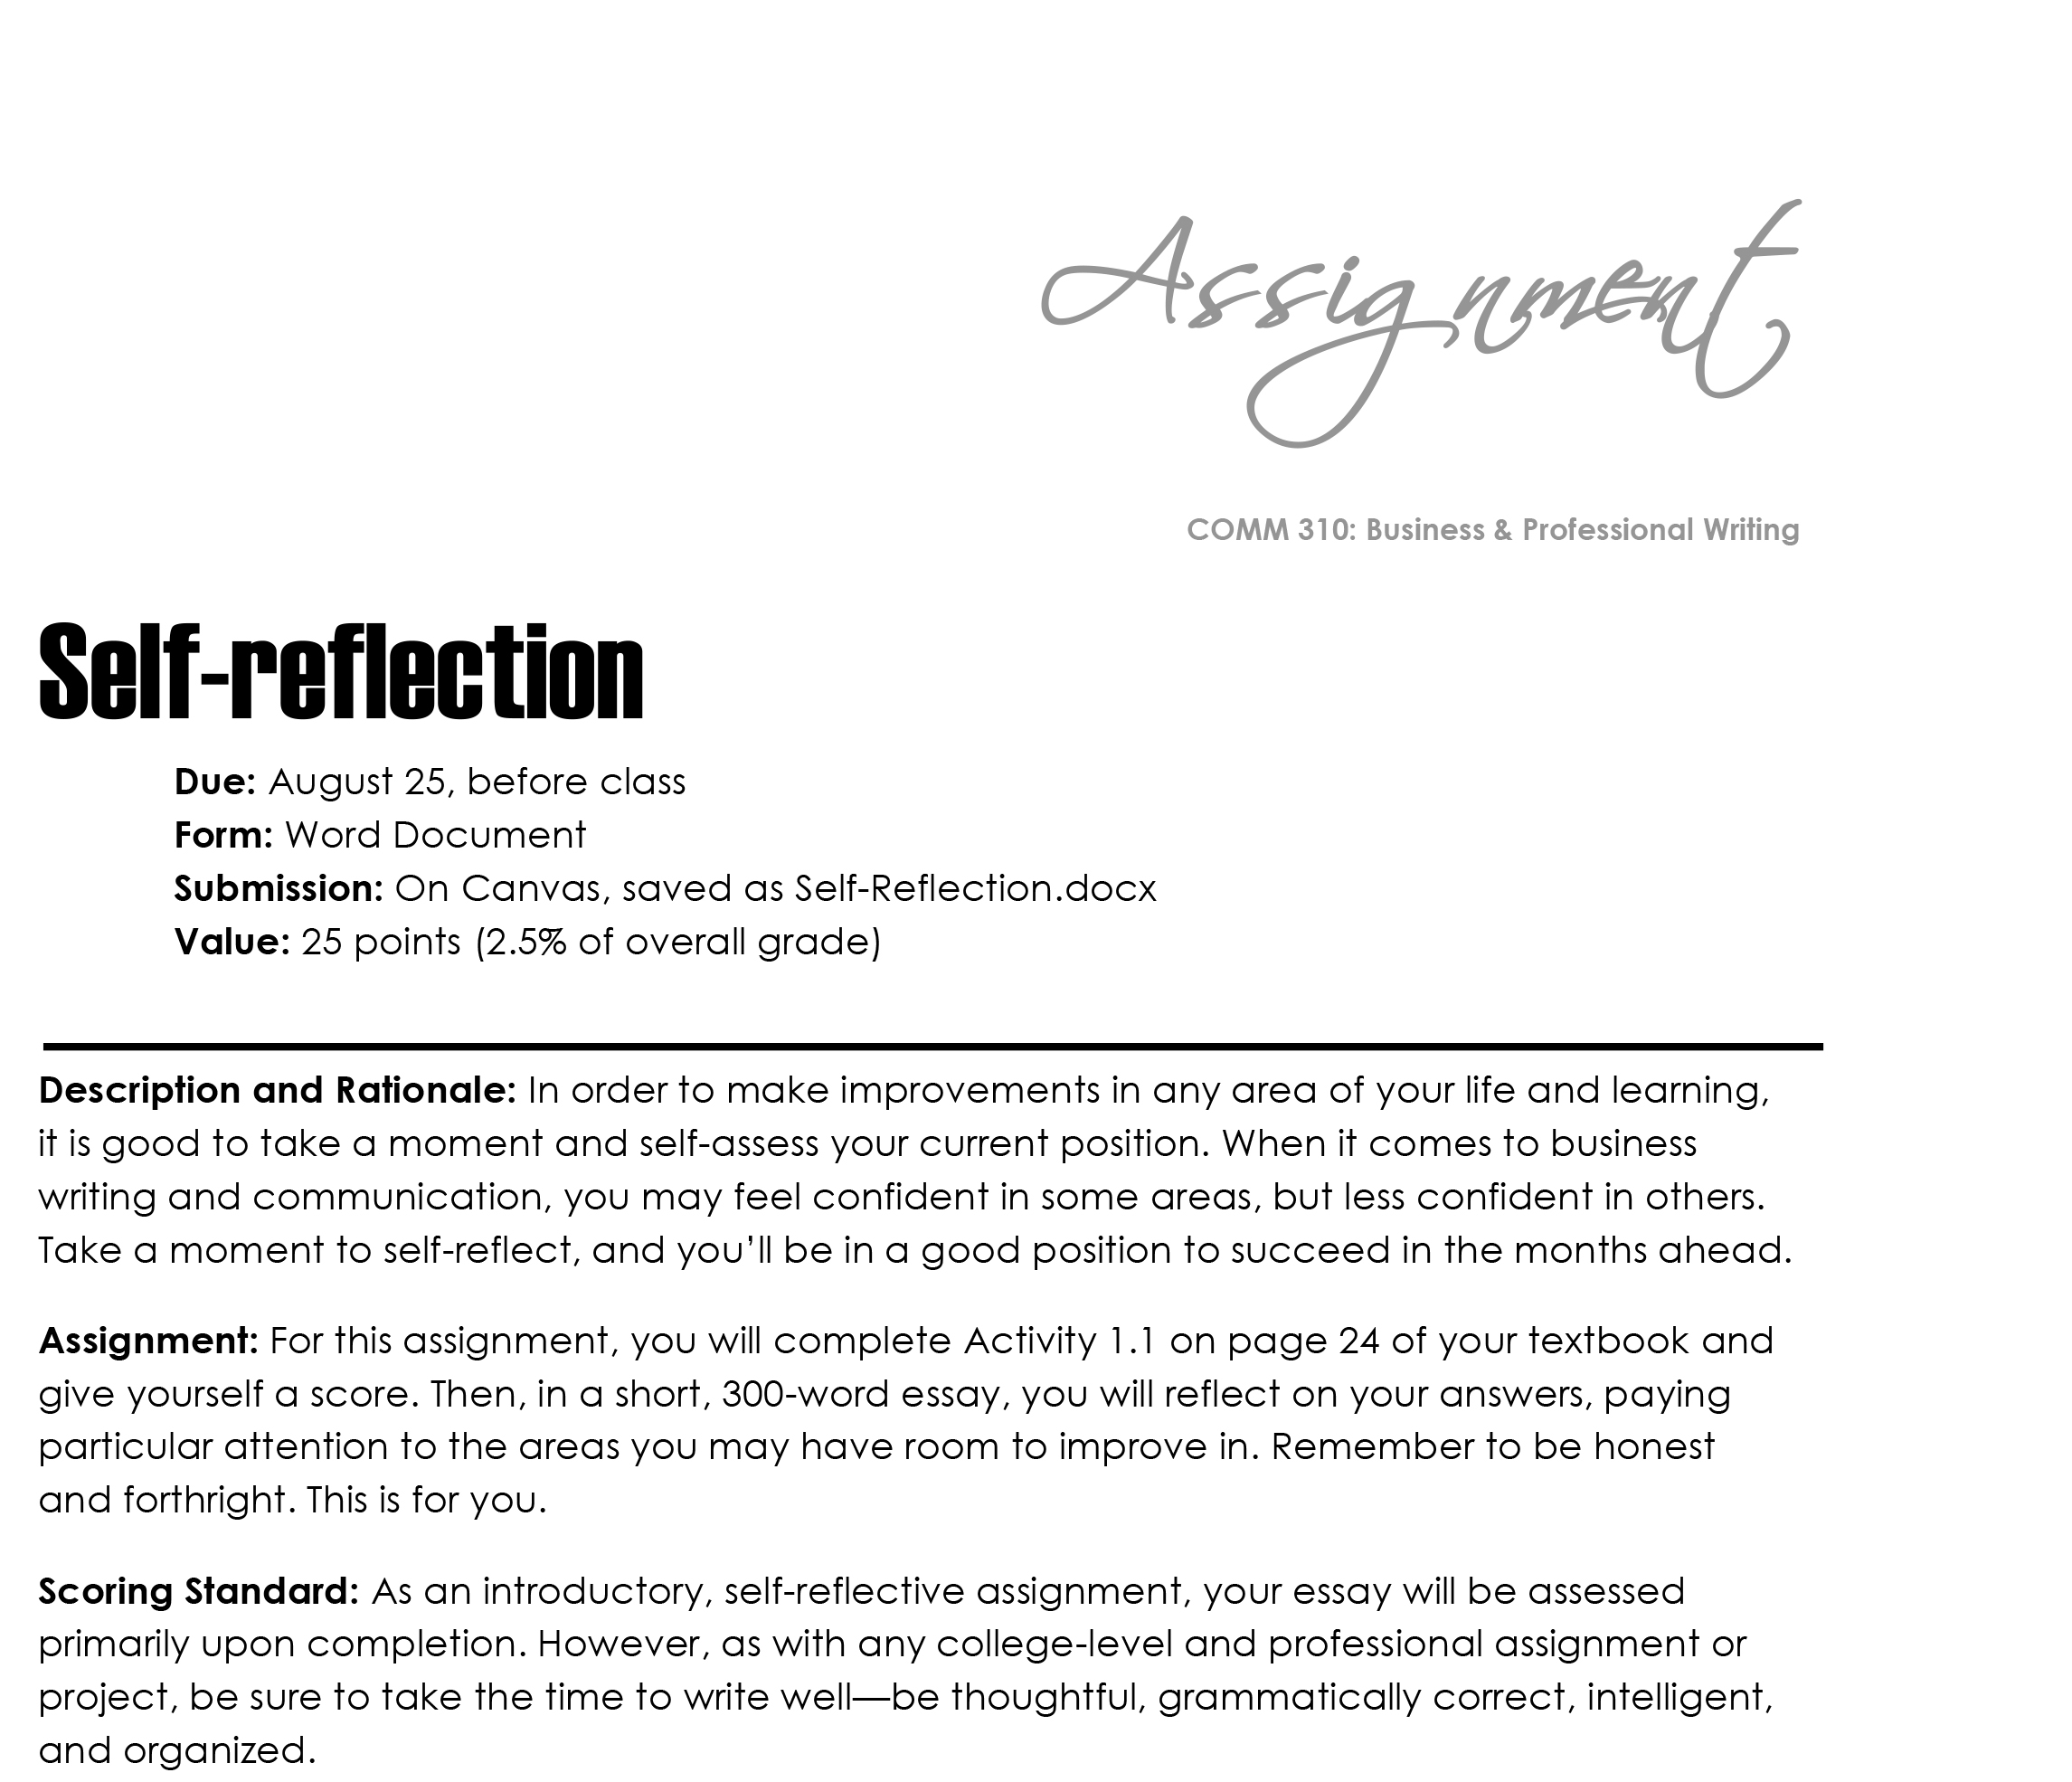 Reflections on teacher self-care essays